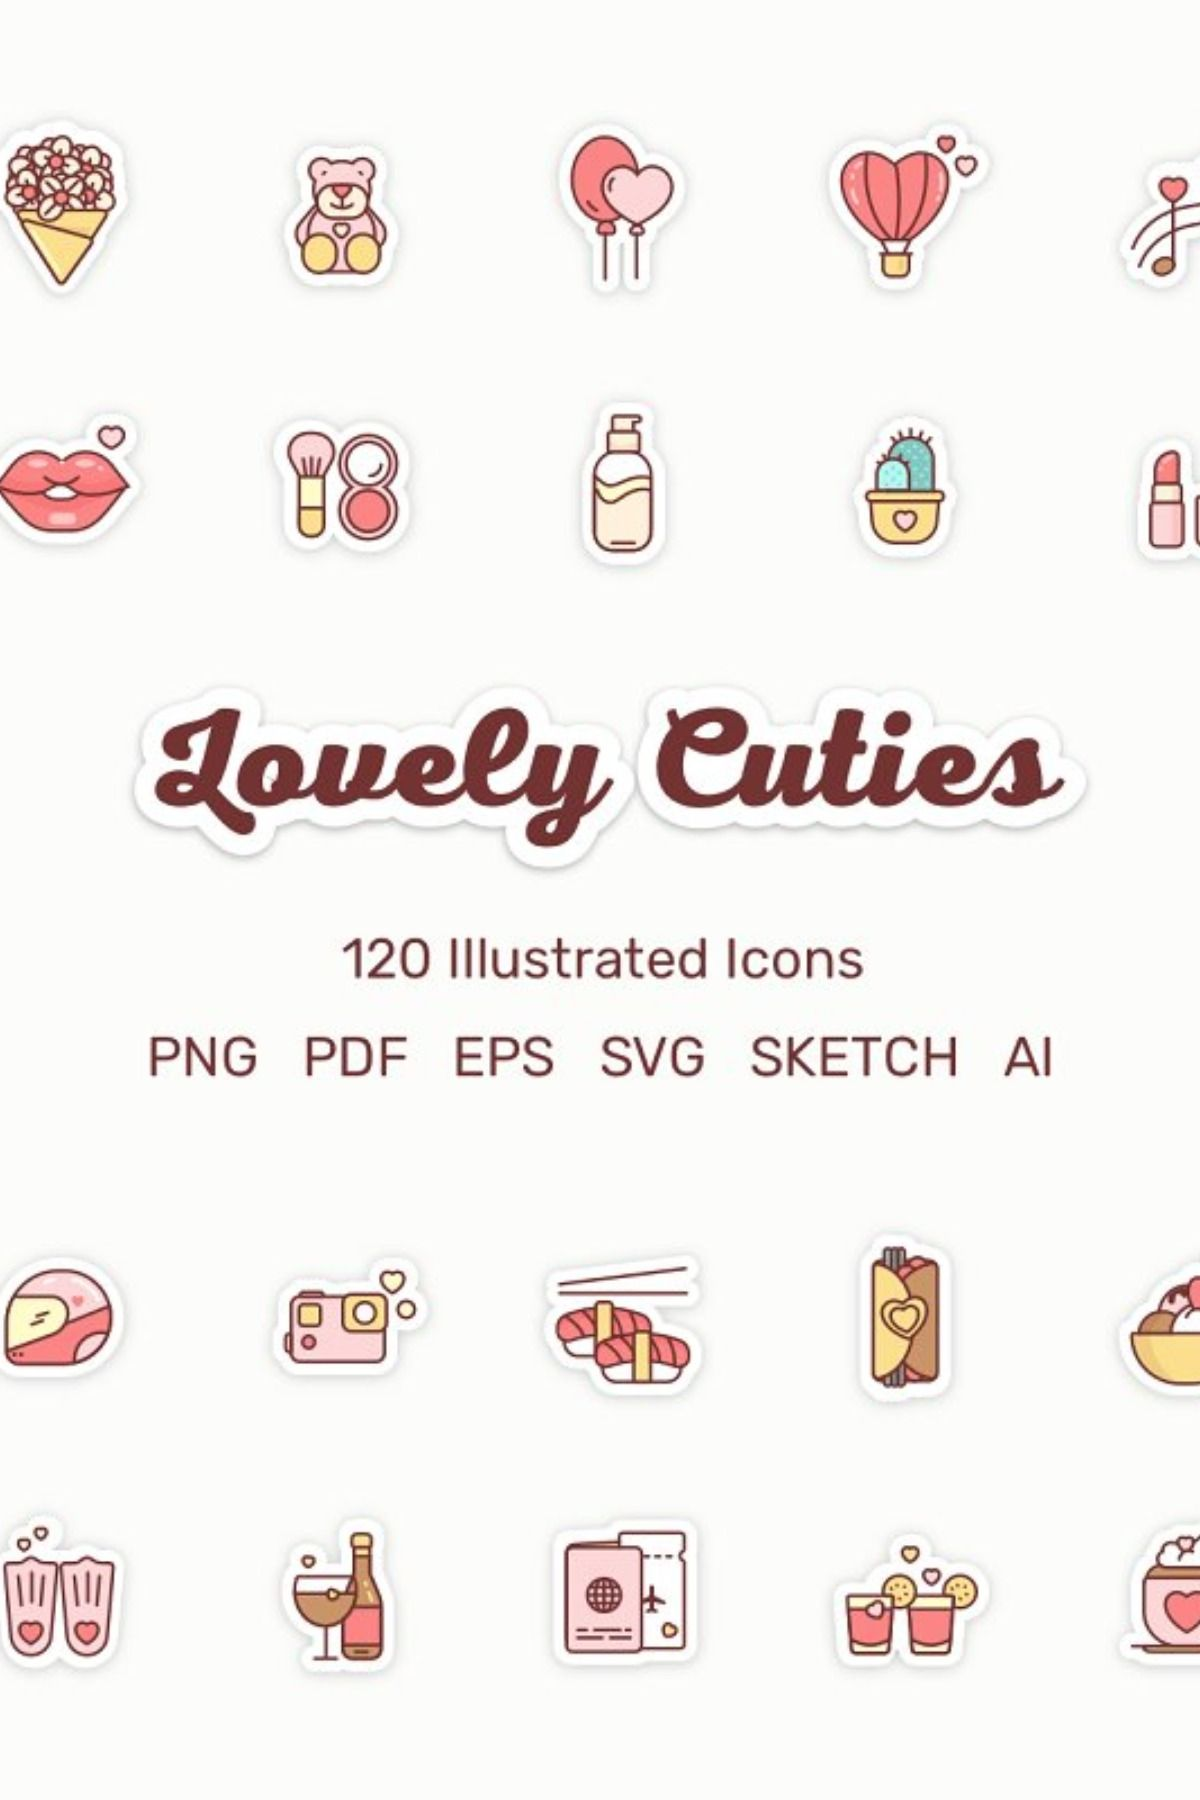 Lovely Cuties 120 Illustrated Icons Icon, Illustration